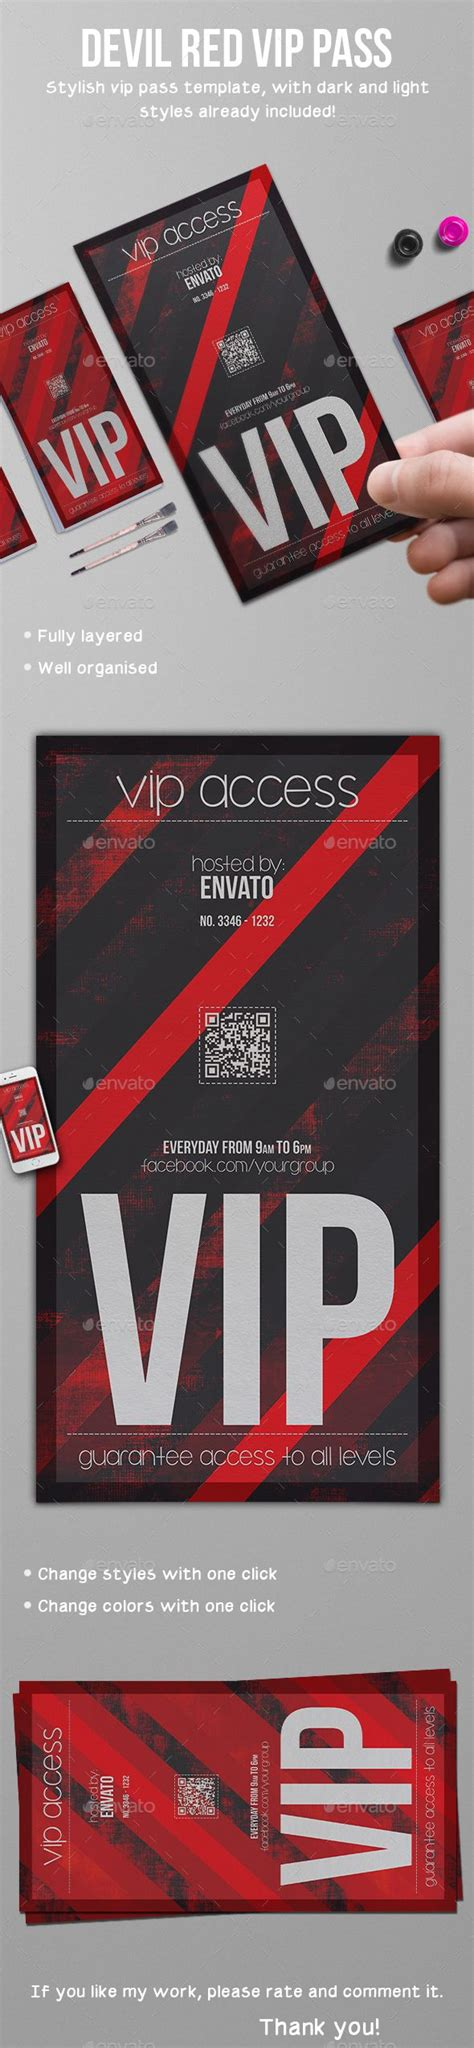 themes vip download best 25 vip pass ideas on pinterest rock star party